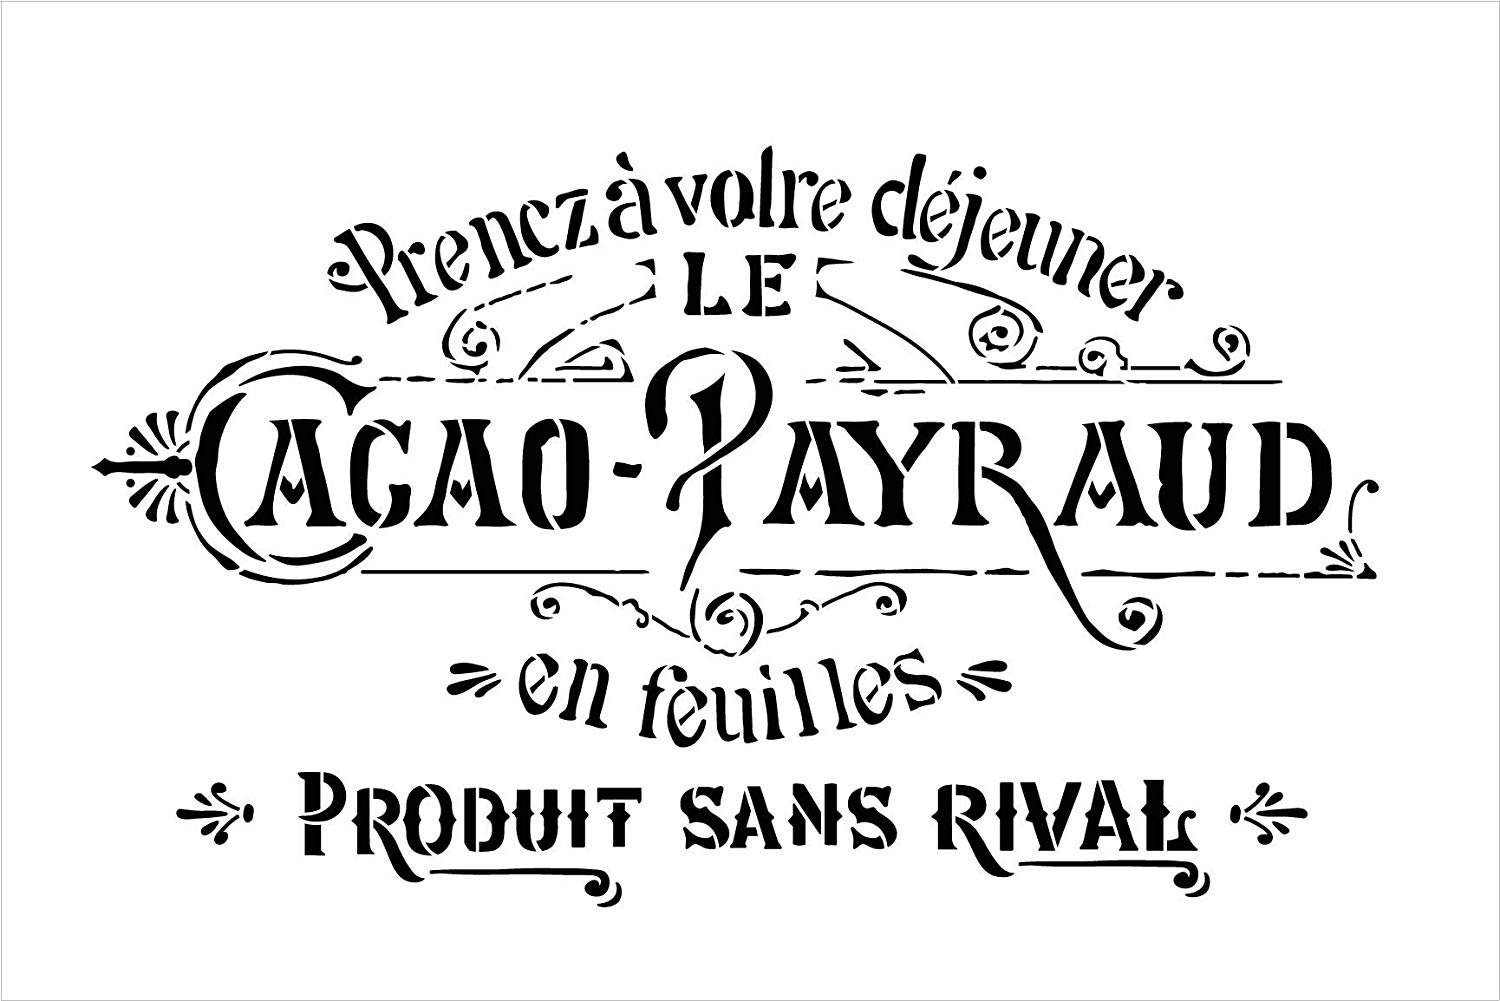 Rustic Embellished Vintage French Stencil by StudioR12 | DIY Ephemera Home Decor & Furniture | Antique Word Art | Craft & Paint Wood Signs | Reusable Mylar Template | Select Size